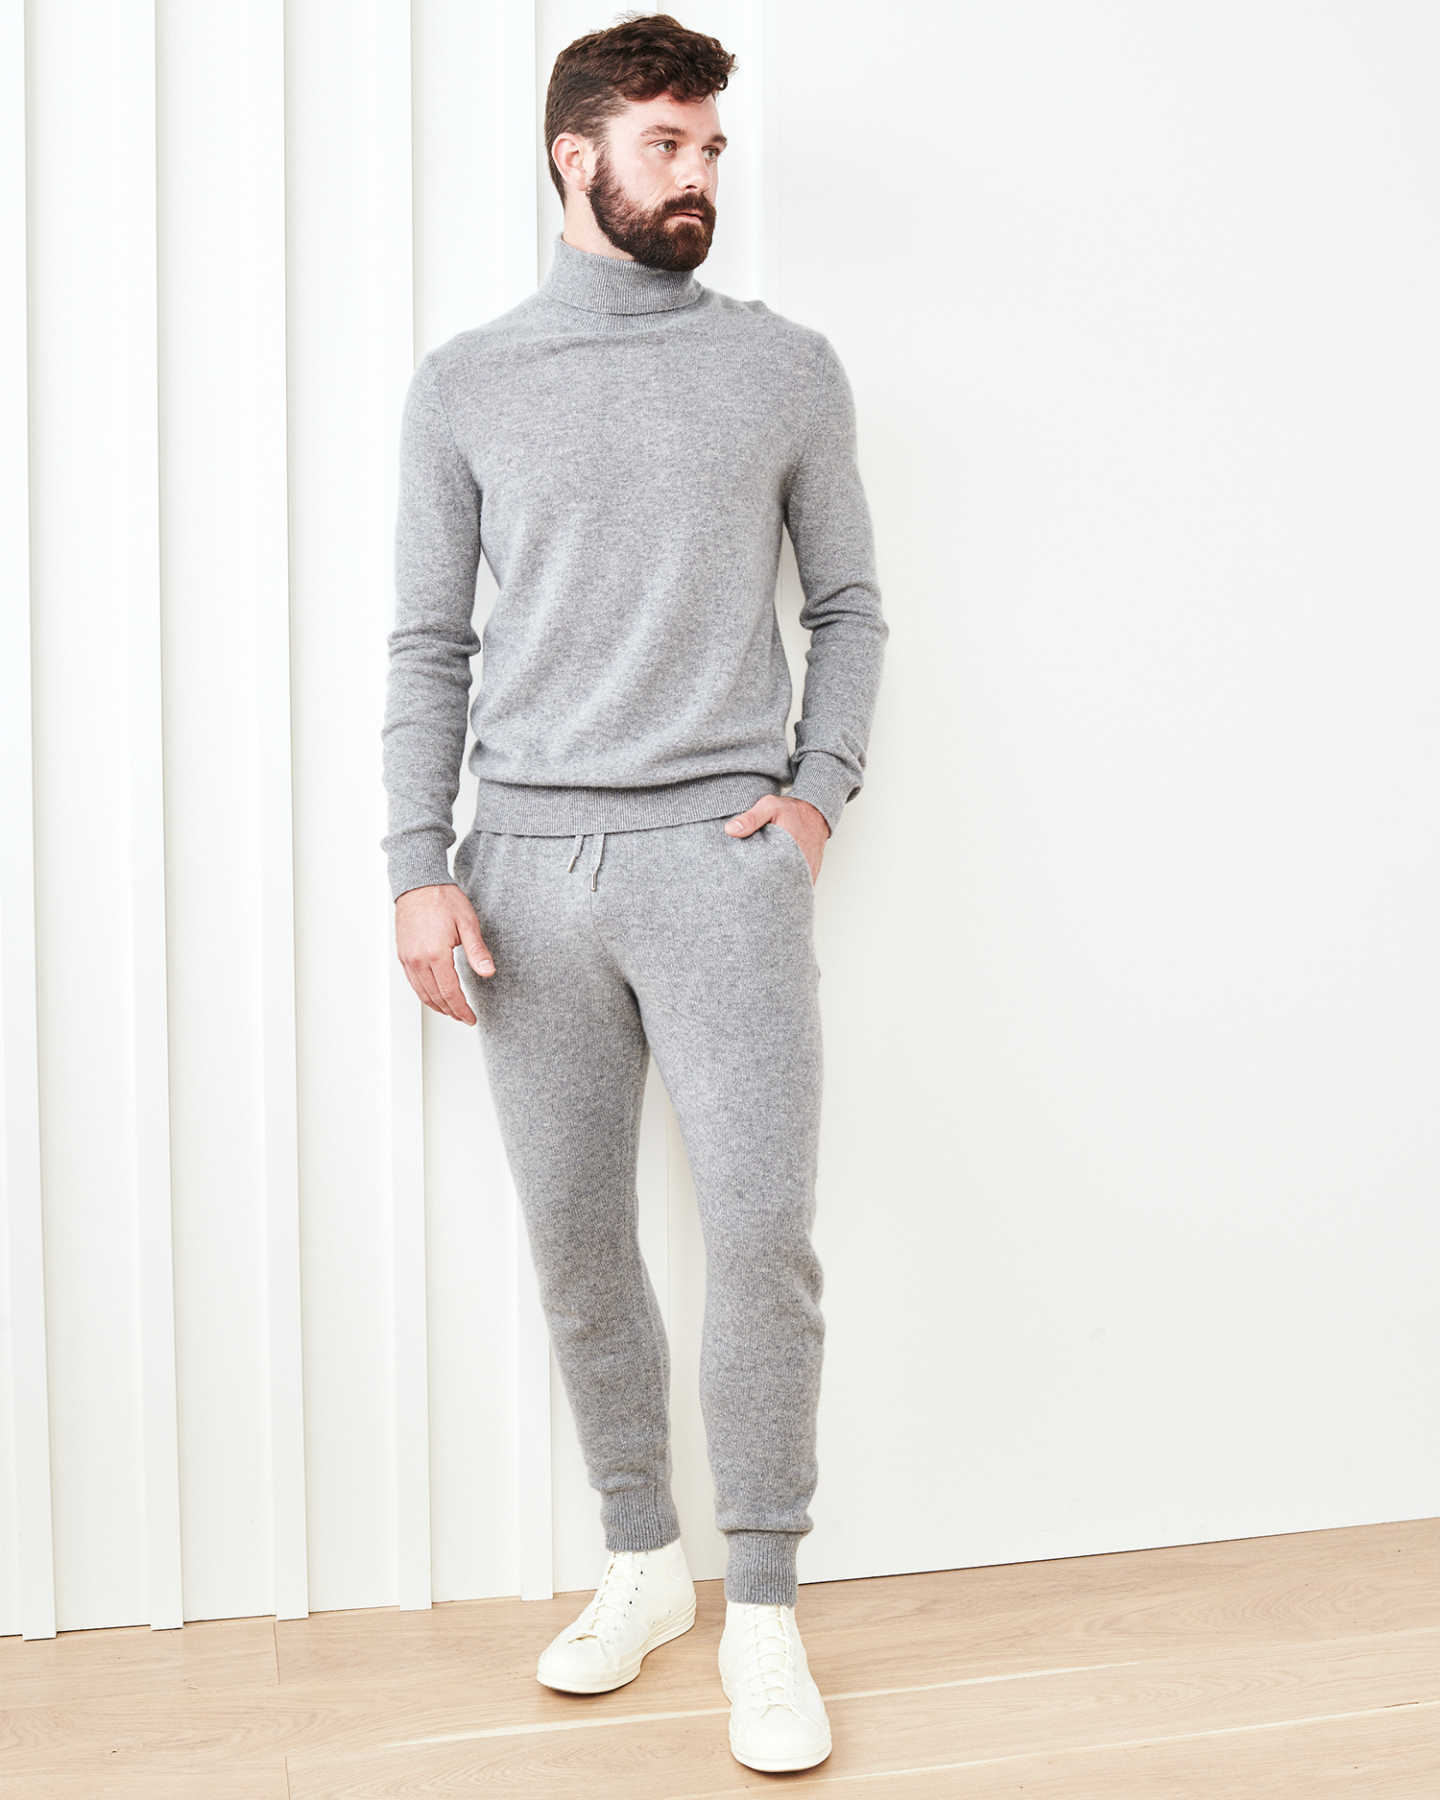 Man wearing cashmere men's cashmere joggers / cashmere sweatpants in grey and grey men's cashmere sweater